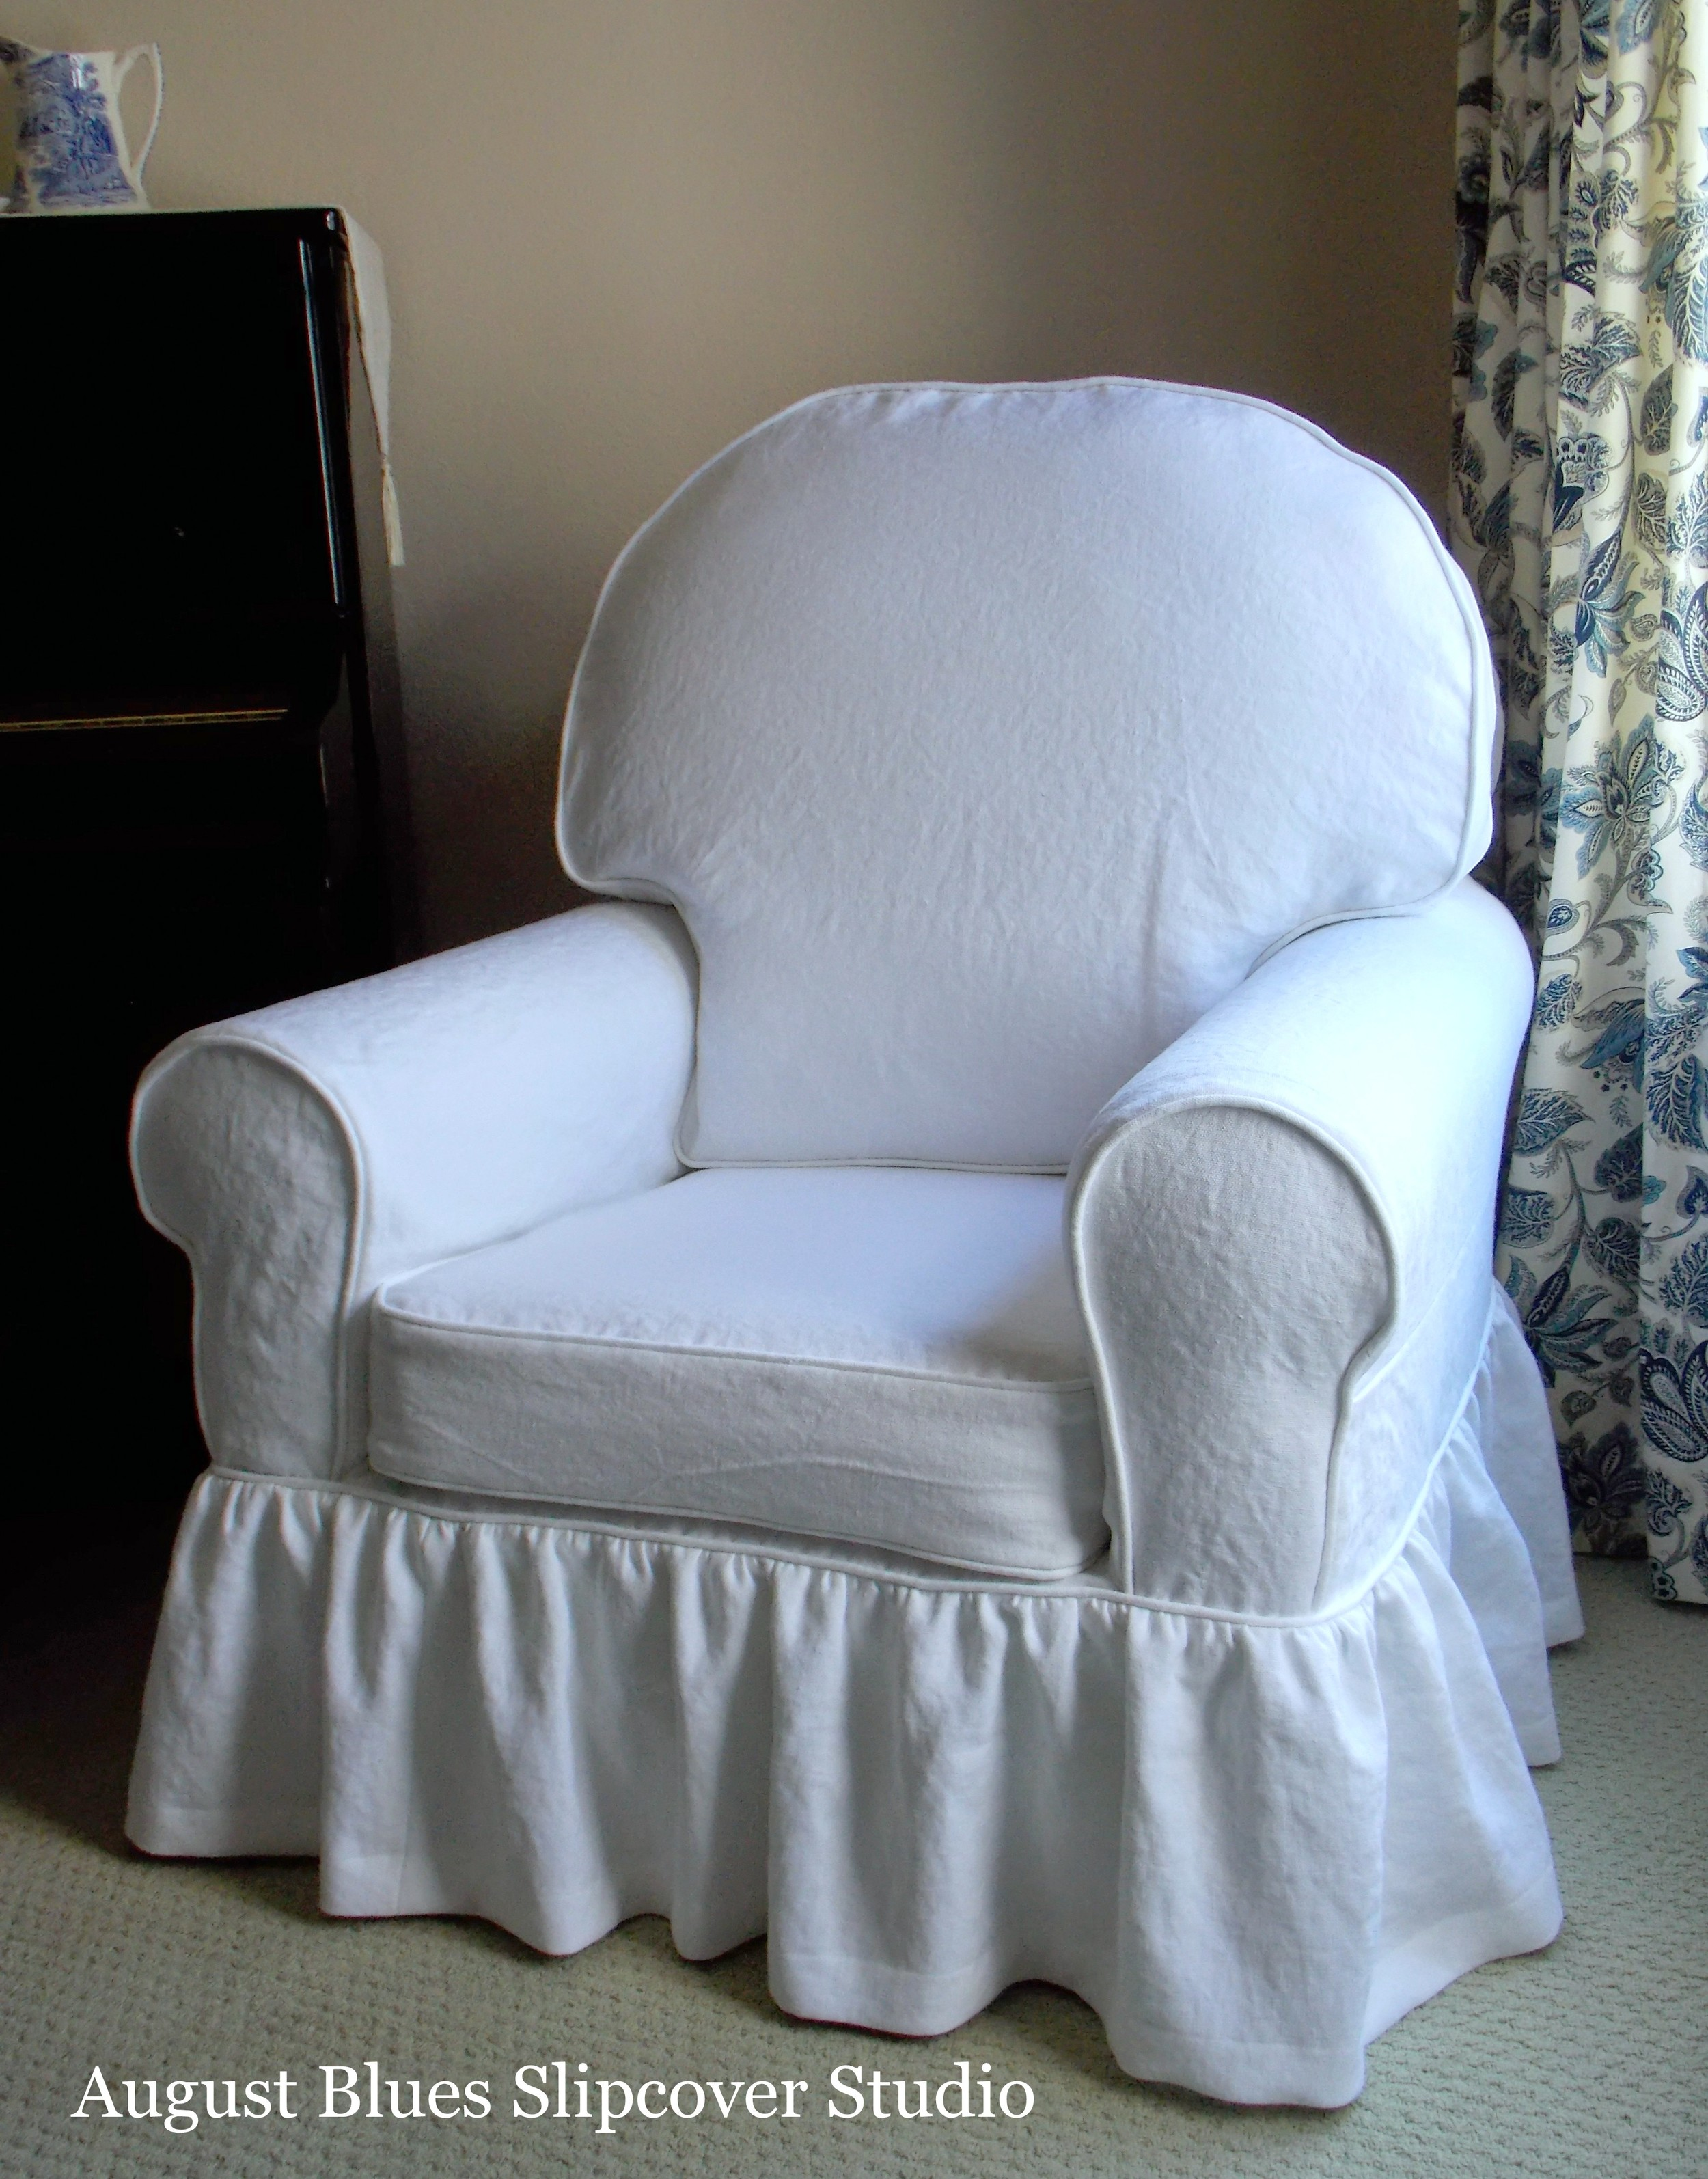 August Blues - linen slipcover after